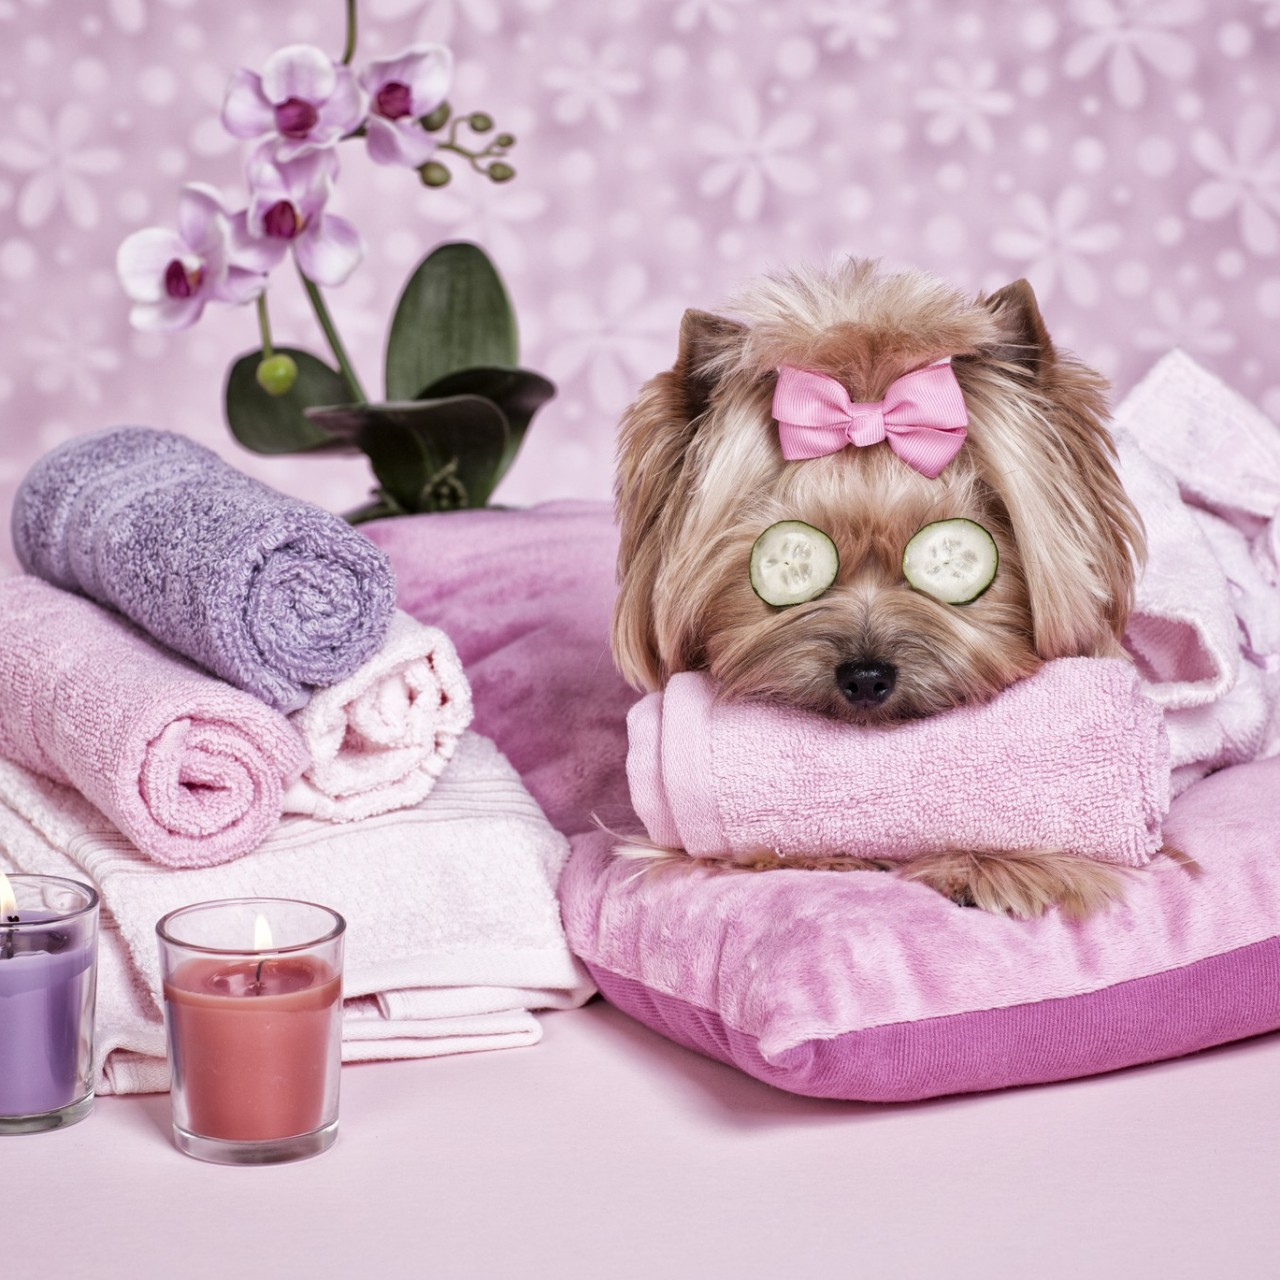 The China boom in pet markets, dog breeding and pet